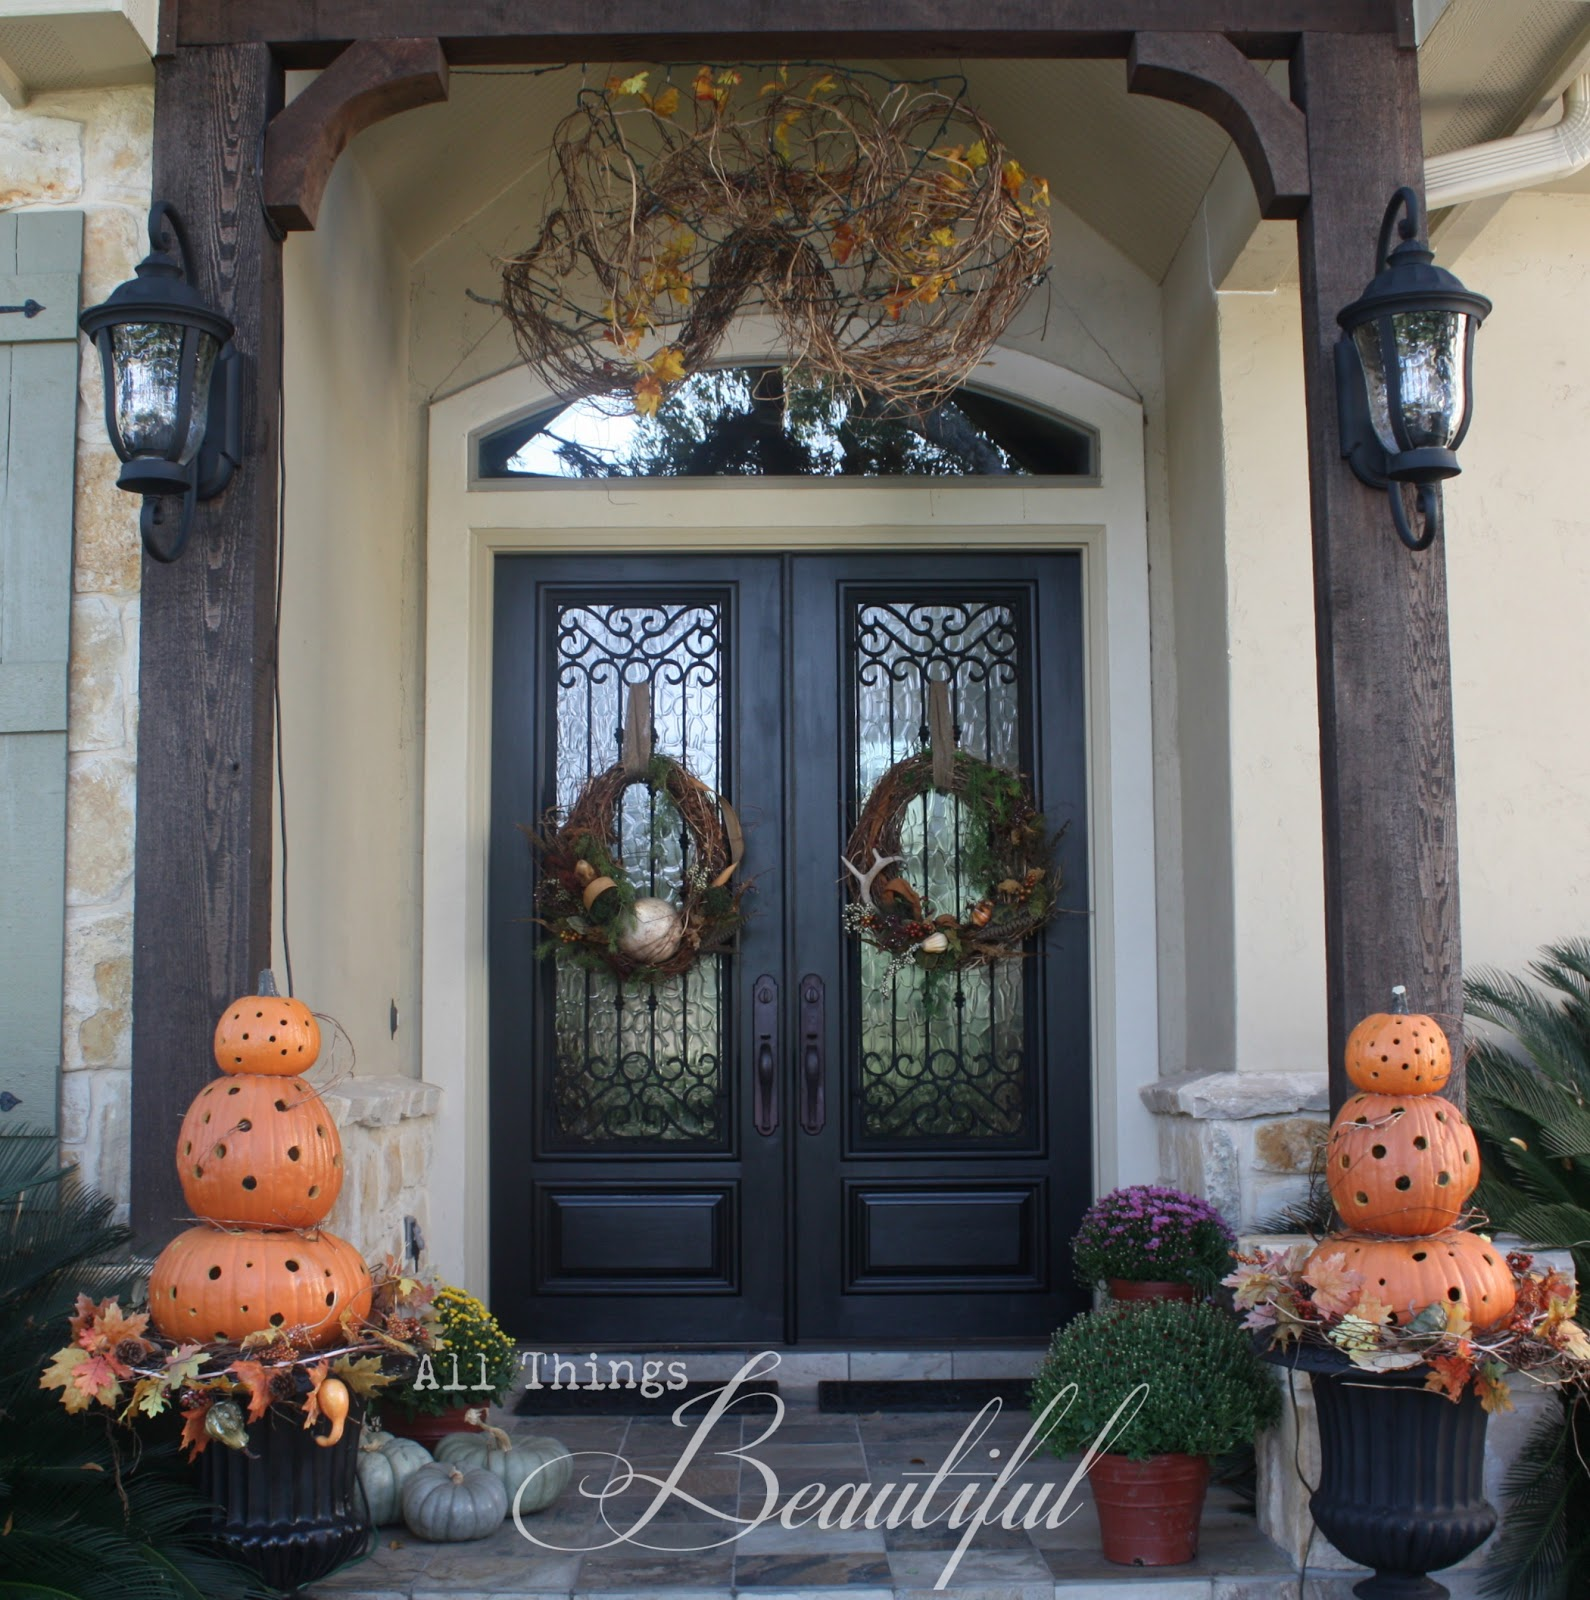 Exterior Front Door Fall Decorations: All Things Beautiful: {Fall Wreath} Porch Decor